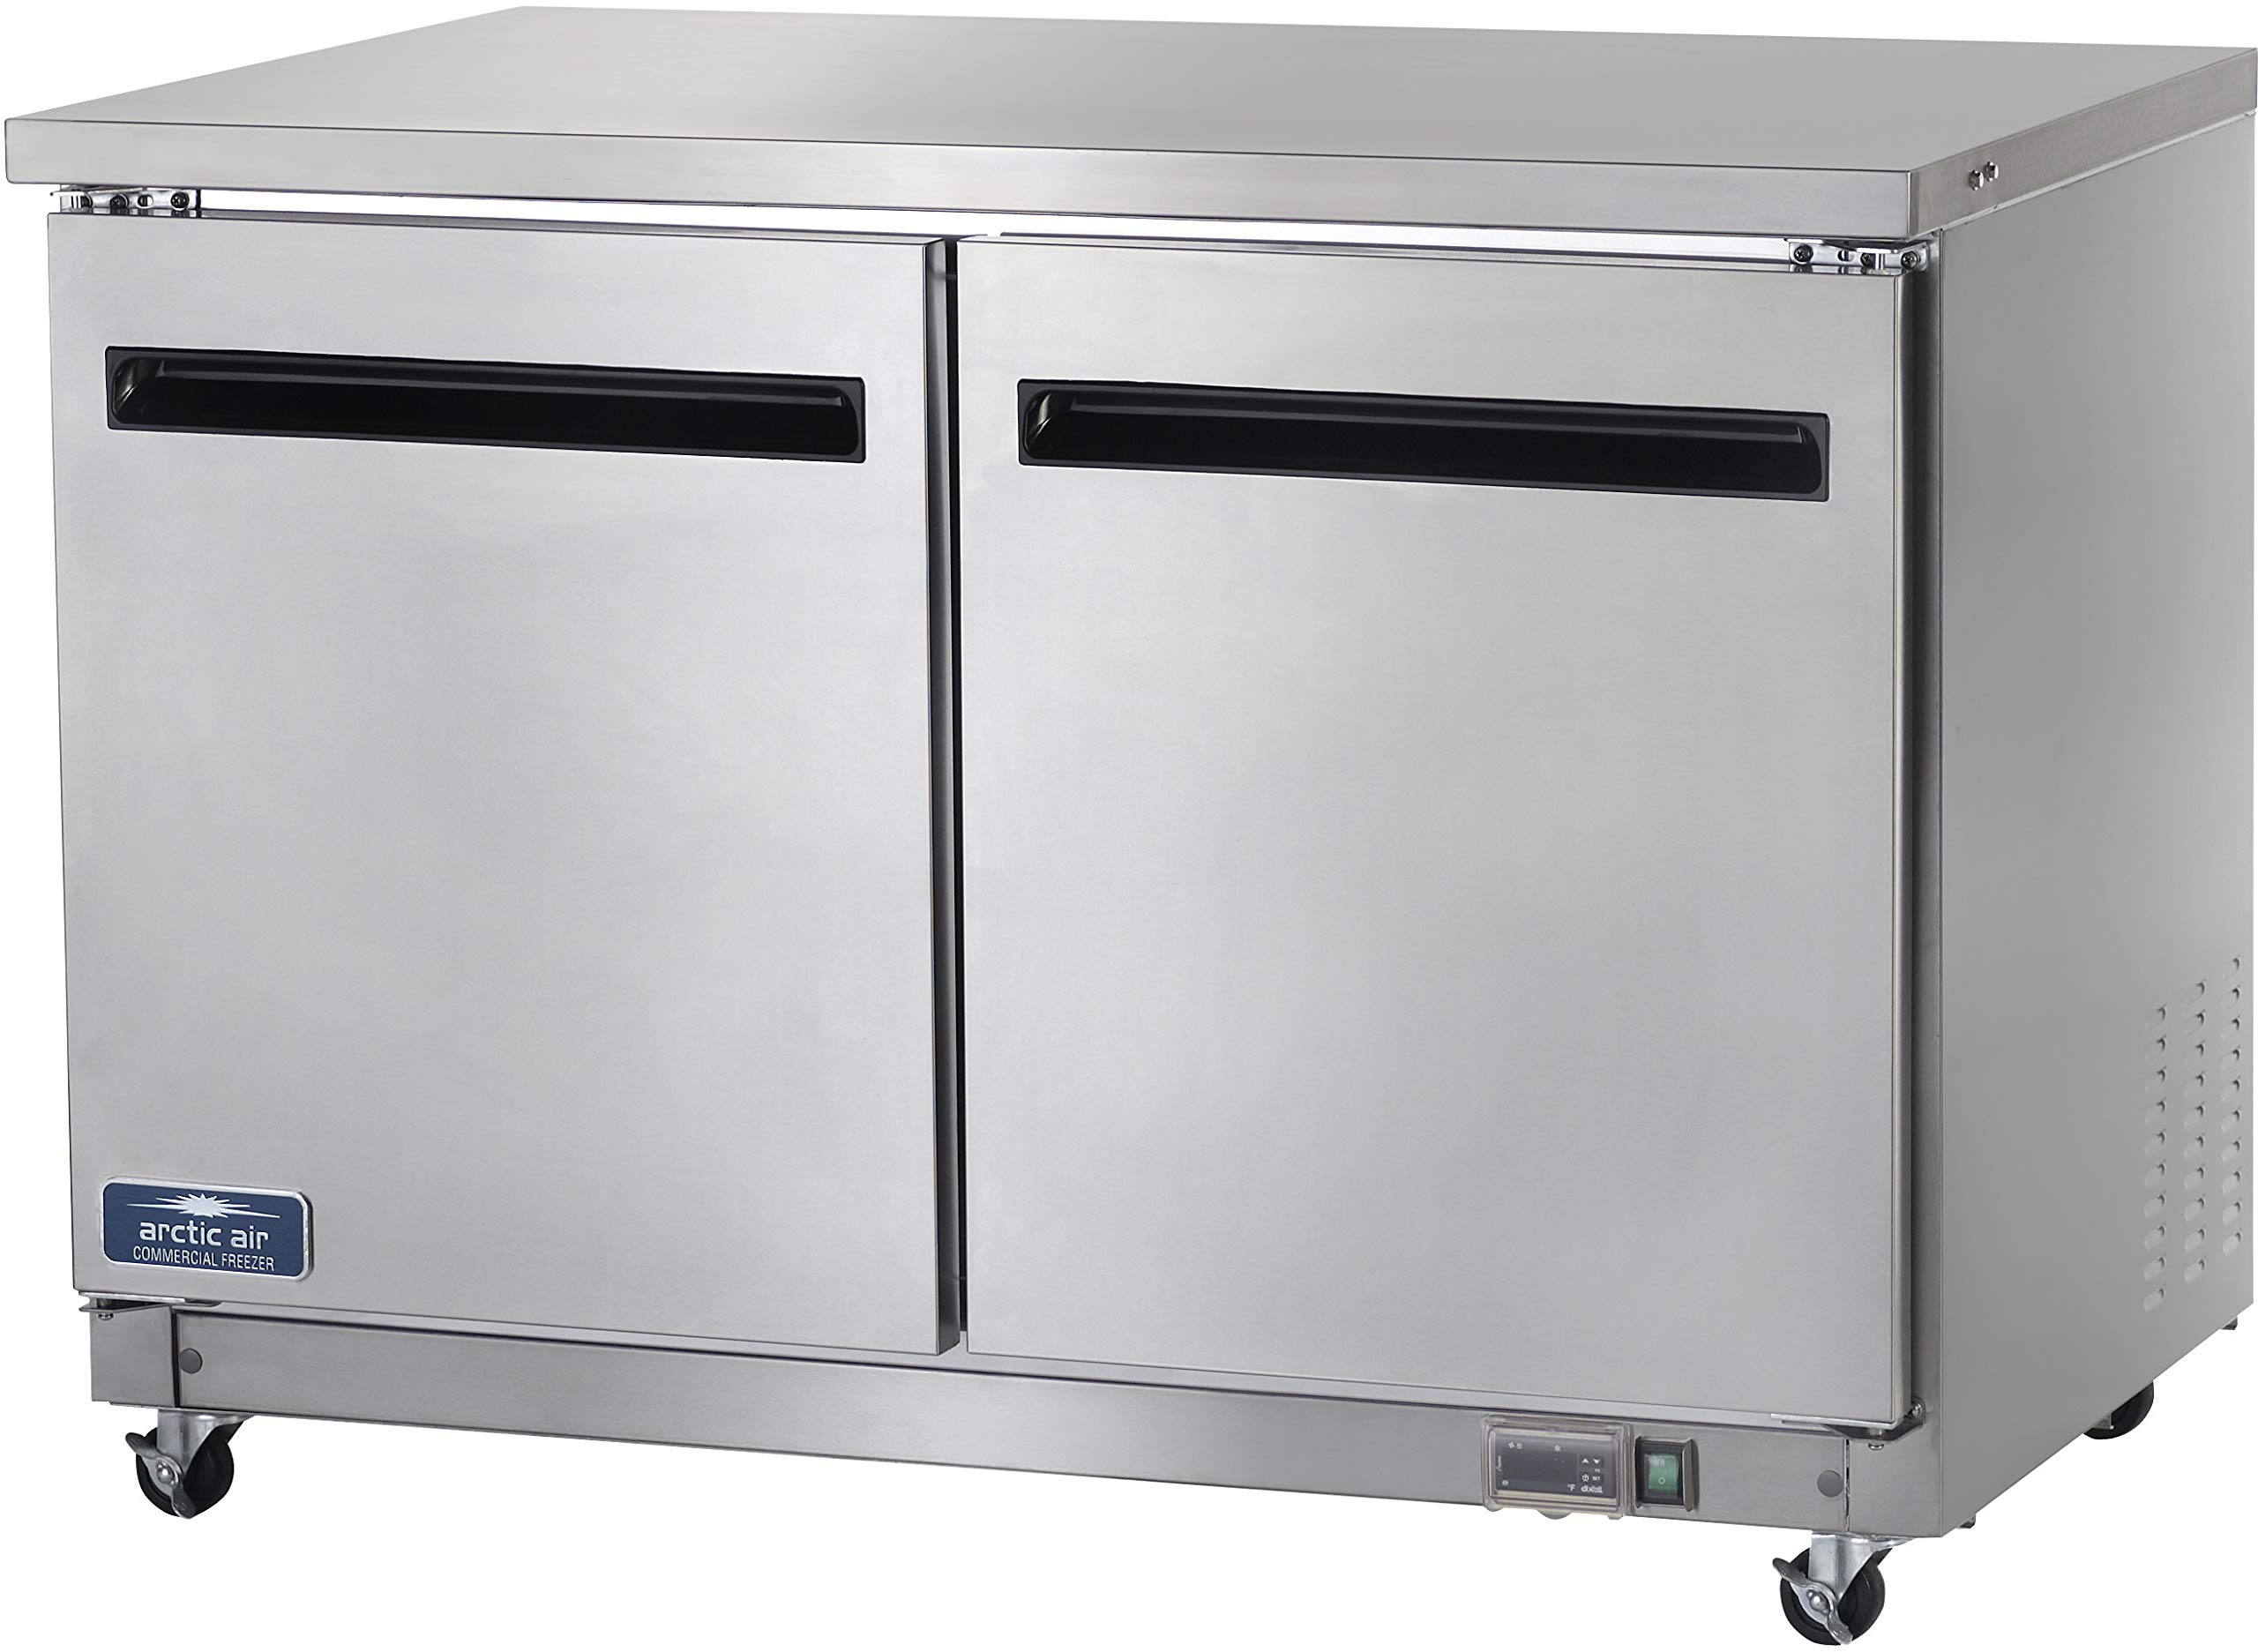 Arctic Air AUC48R 48'' Undercounter Refrigerator - 12 cu. ft, Stainless Steel by Arctic Air